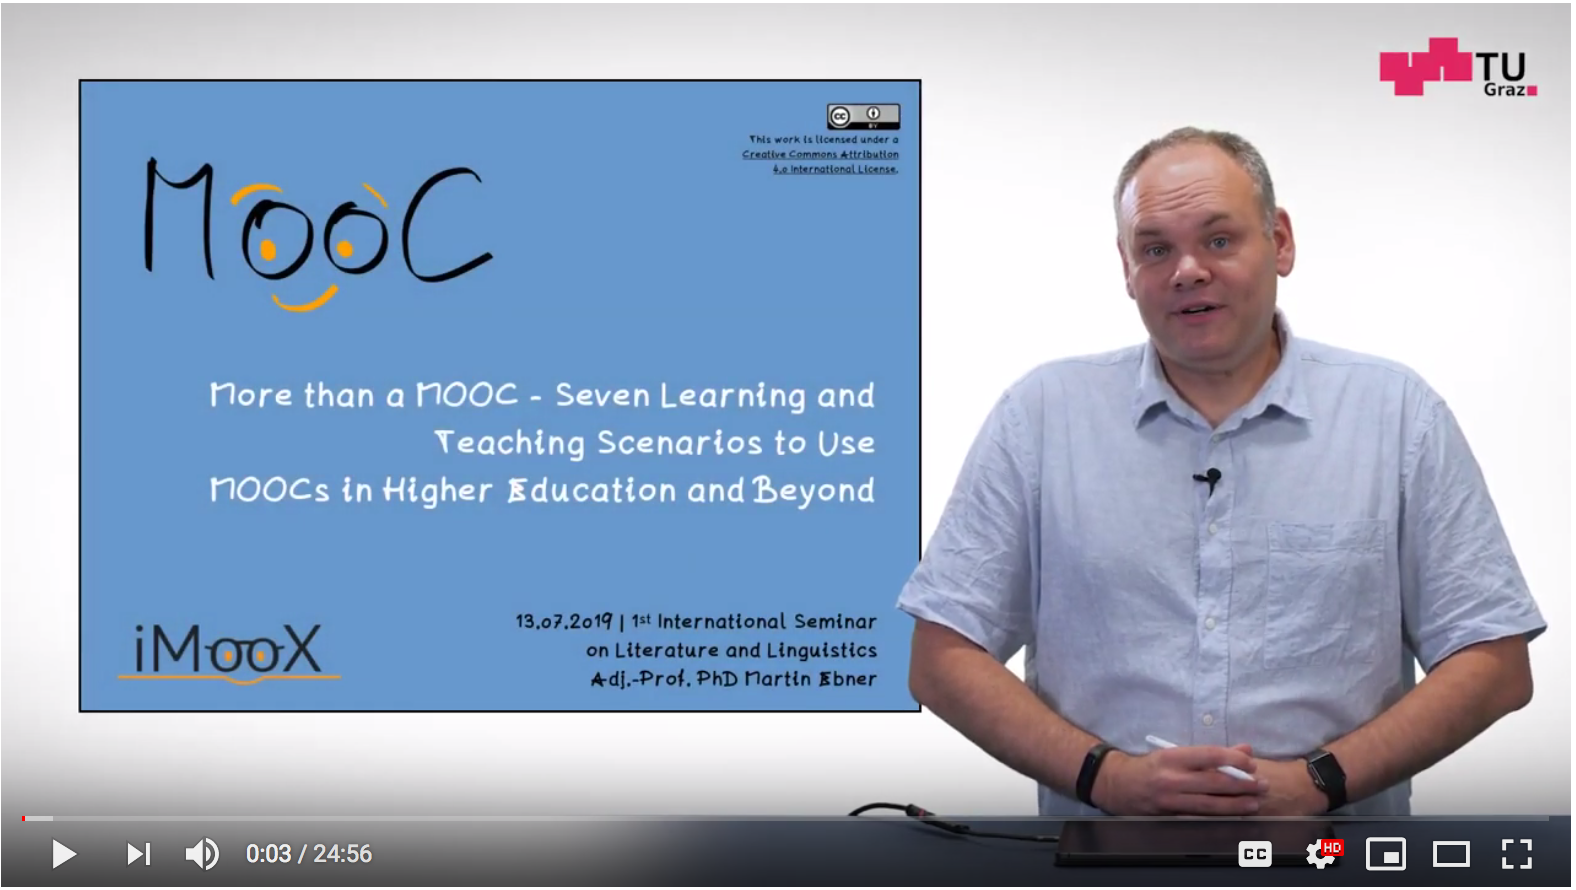 Keynote Review: More than a MOOC- Seven Learning and Teaching